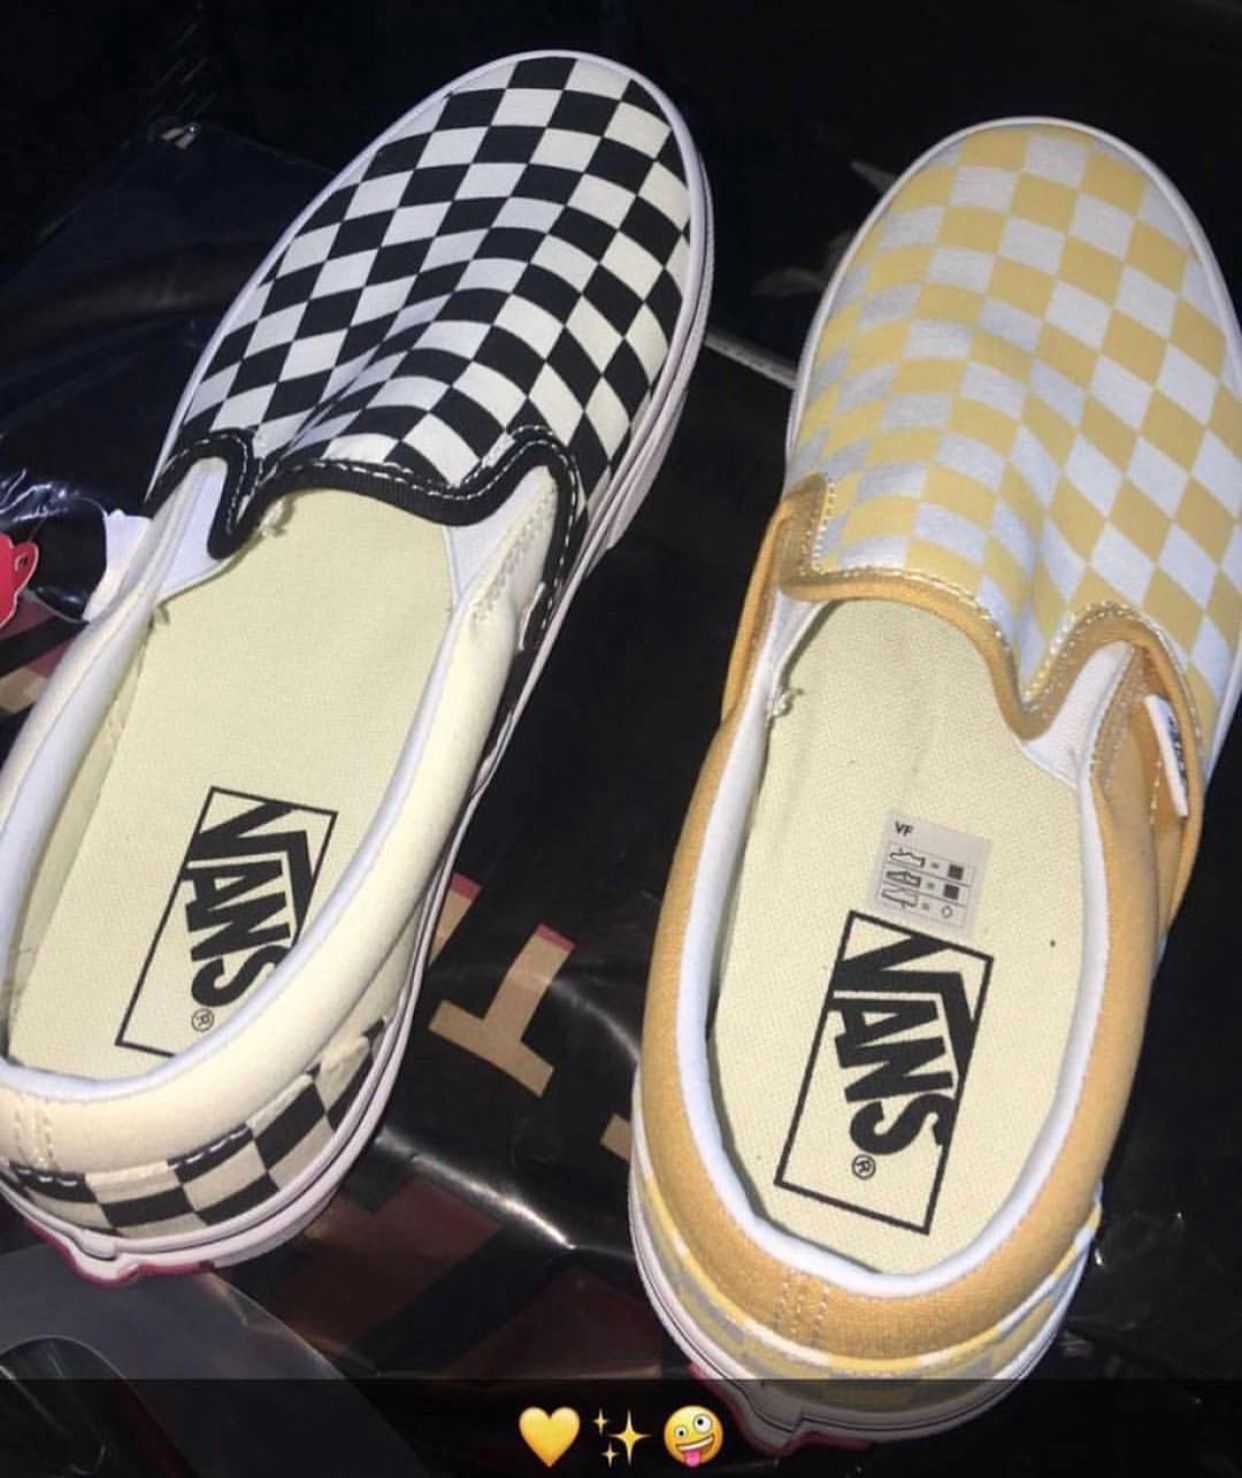 Pin by ShaNyla Cooke on shoes . | Vans shoes, Shoes, Shoes